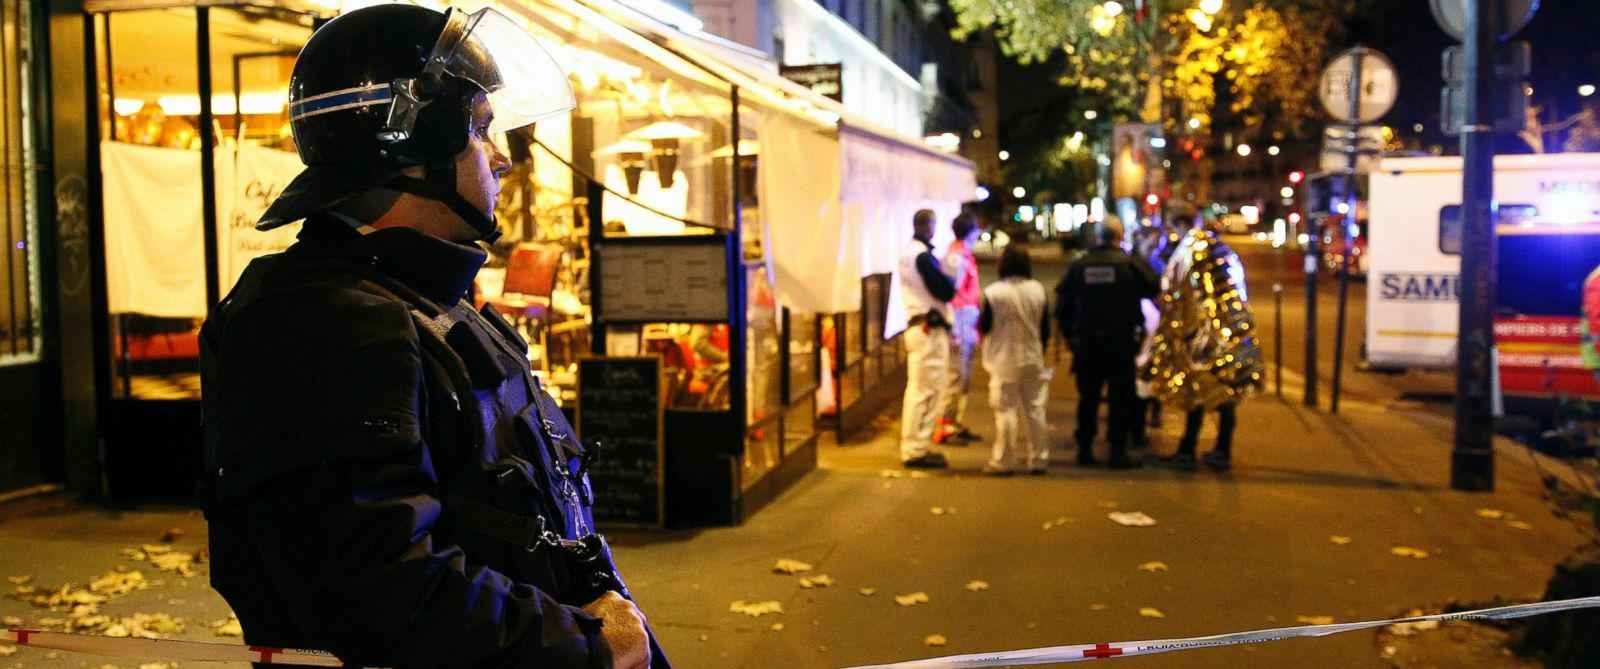 gty_paris_attacks_26_jc_151113_12x5_1600